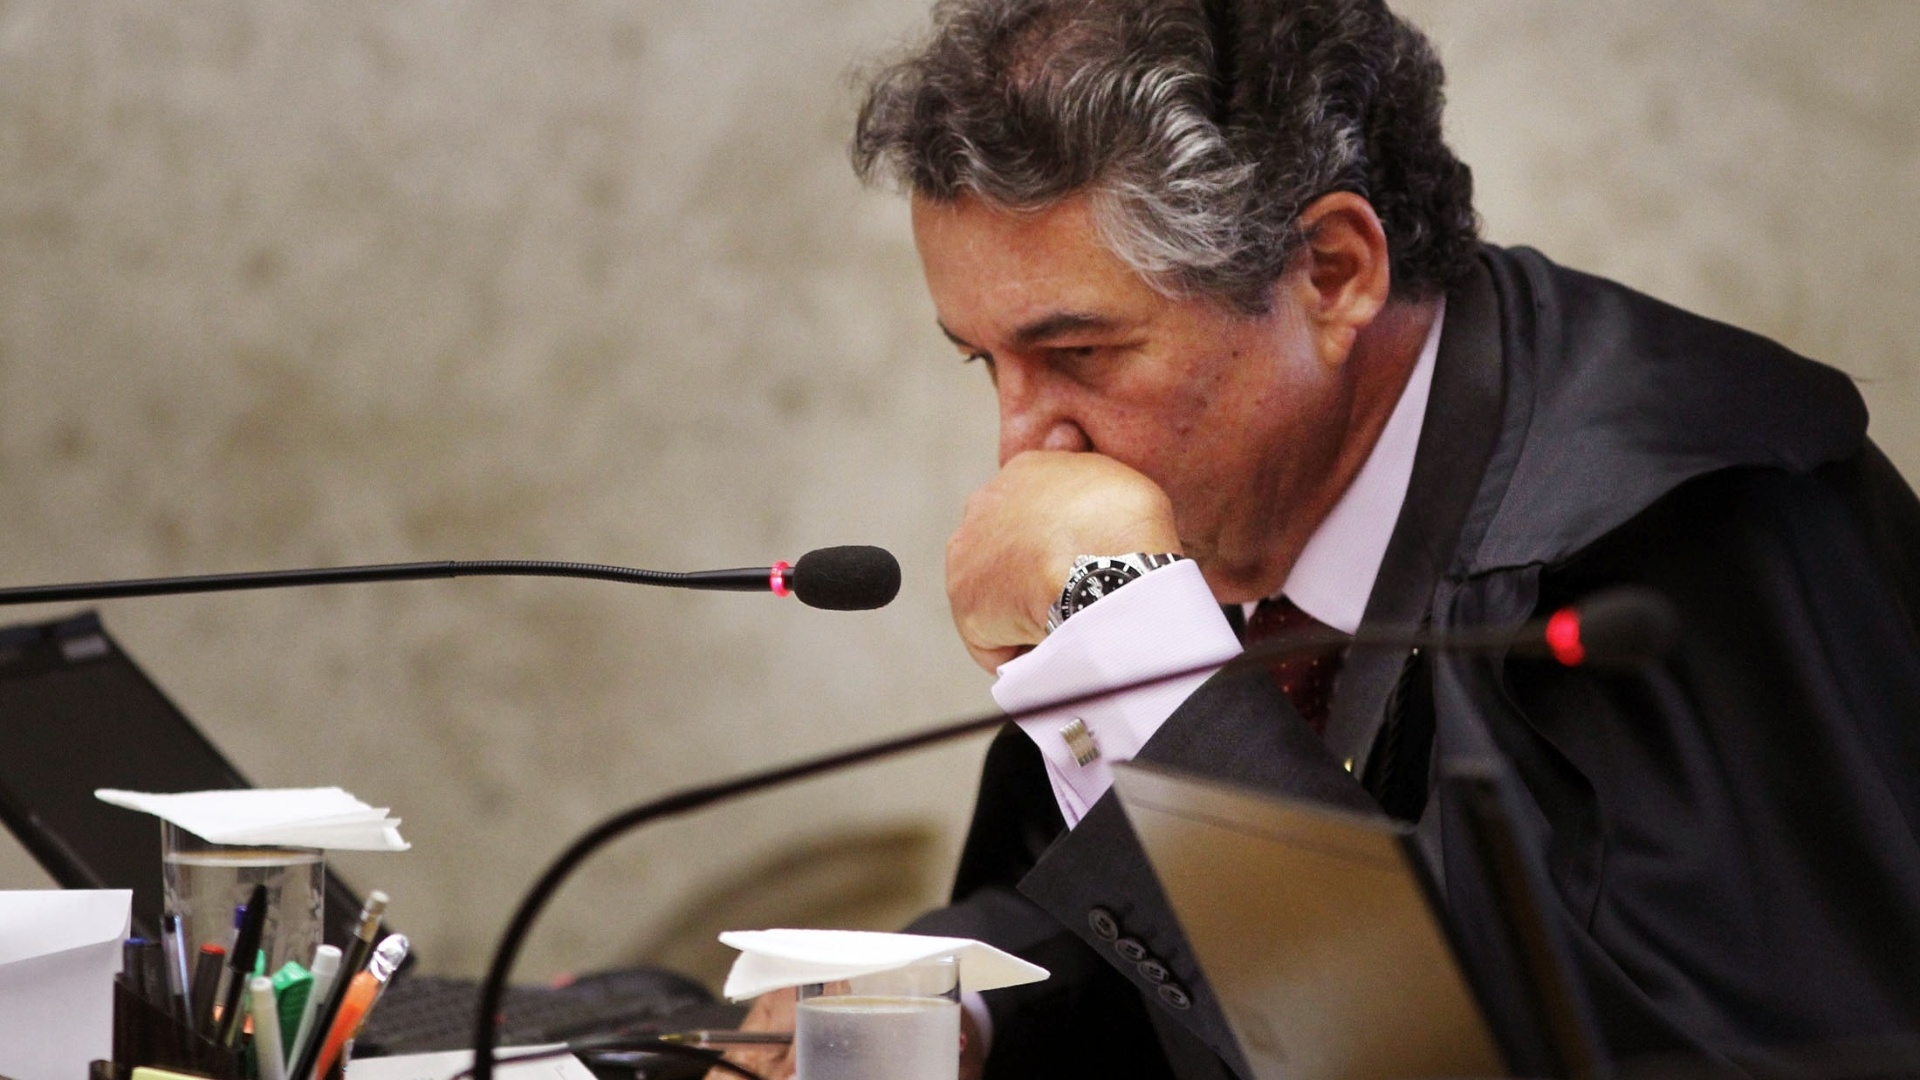 9.out.2012 - Ministro Marco Aurlio no plenrio do Supremo Tribunal Federal (STF) durante julgamento do mensalo